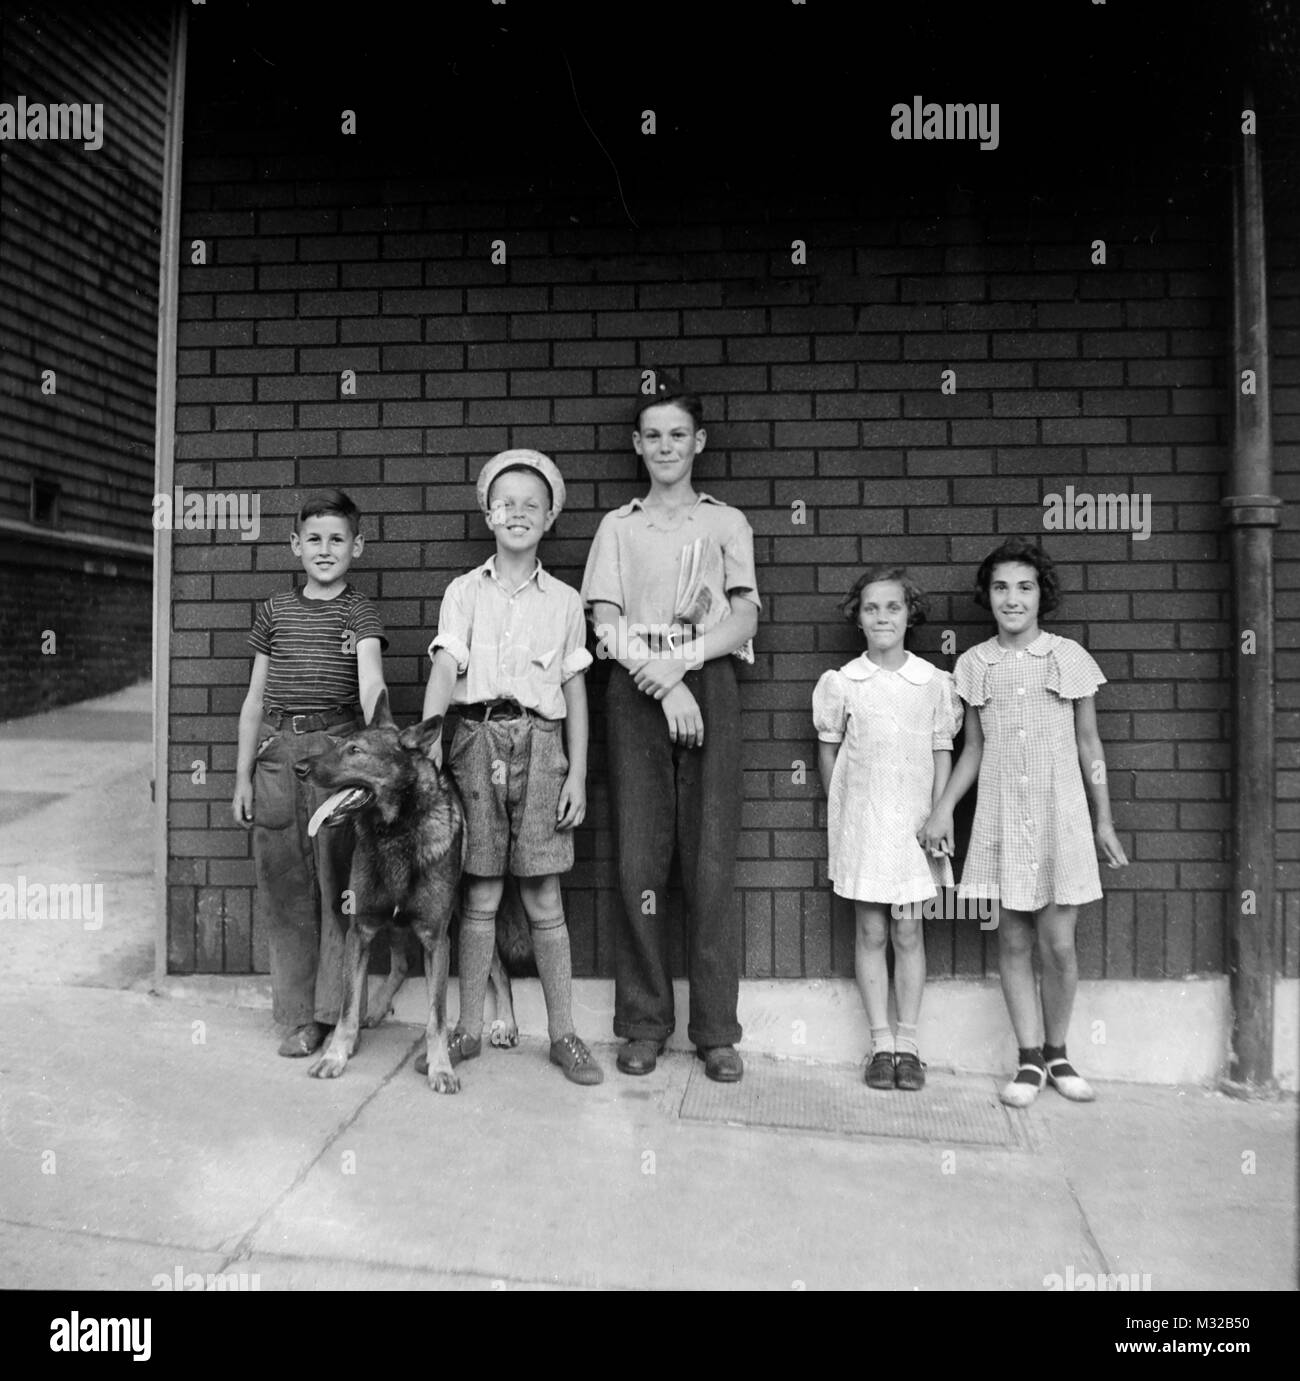 Neighborhood children and a dog line up for a photo against a brick wall, ca. 1928. - Stock Image